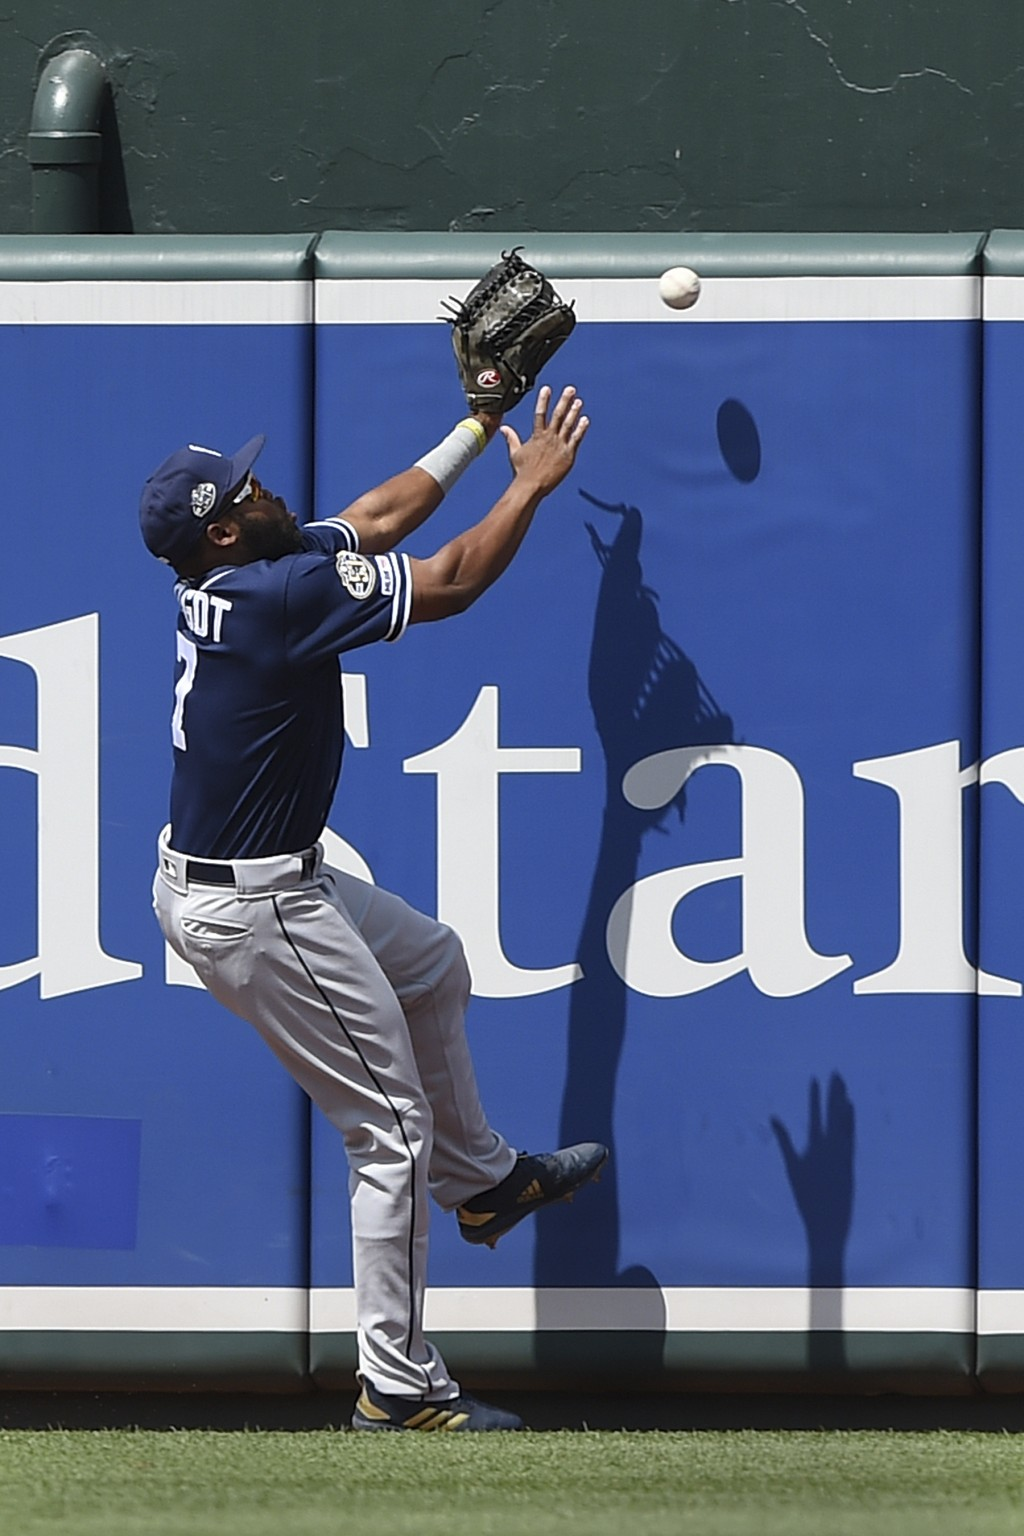 San Diego Padres' Manuel Margot reaches for a ball hit by Baltimore Orioles' Hanser Alberto in the first inning of a baseball game Wednesday, June 26,...